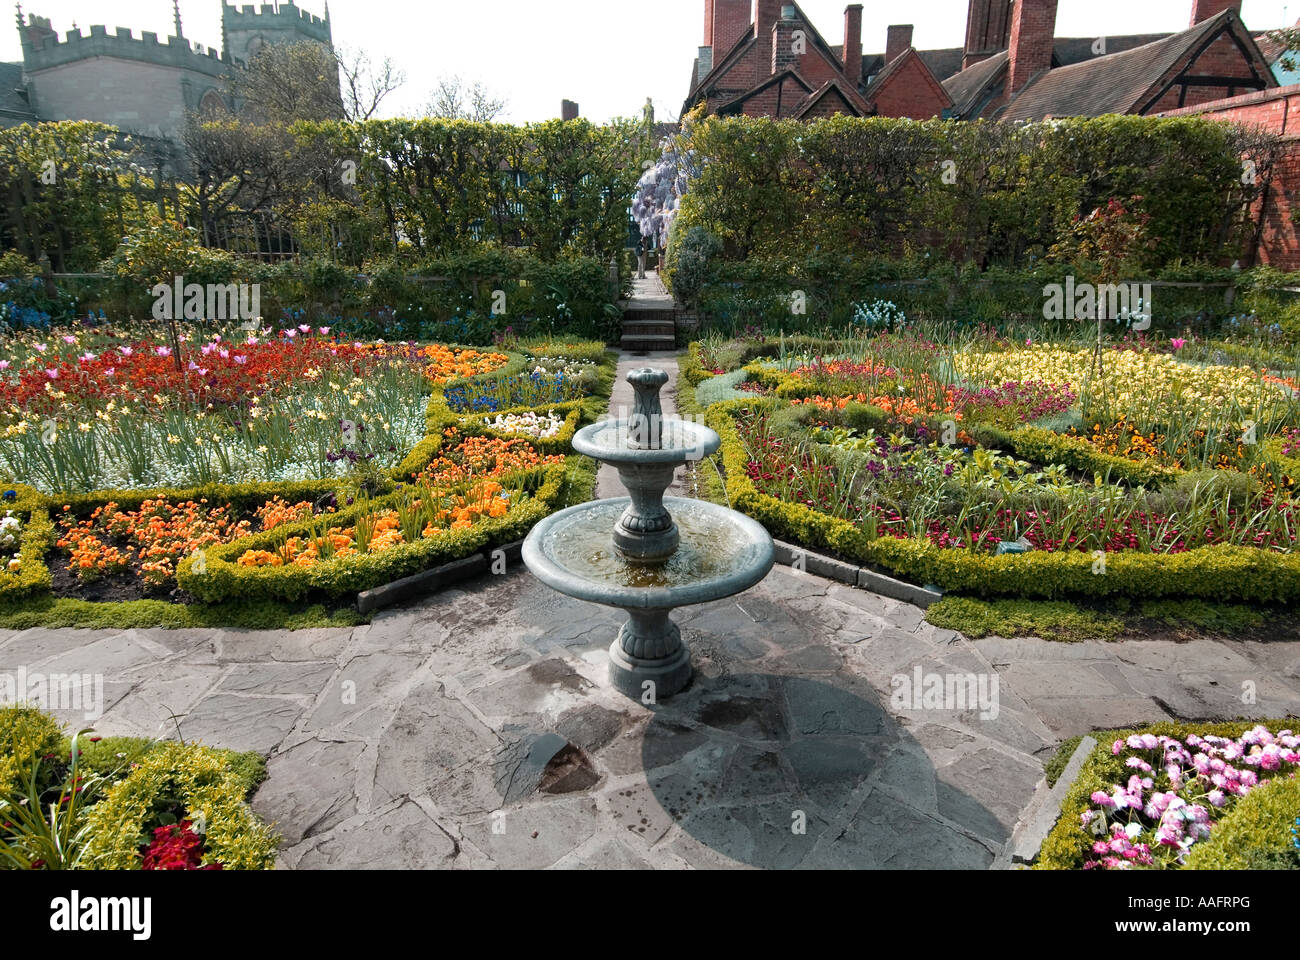 New Place Elizabethan Knott Garden on the Site of William Shakespeare s house in Stratford upon Avon - Stock Image